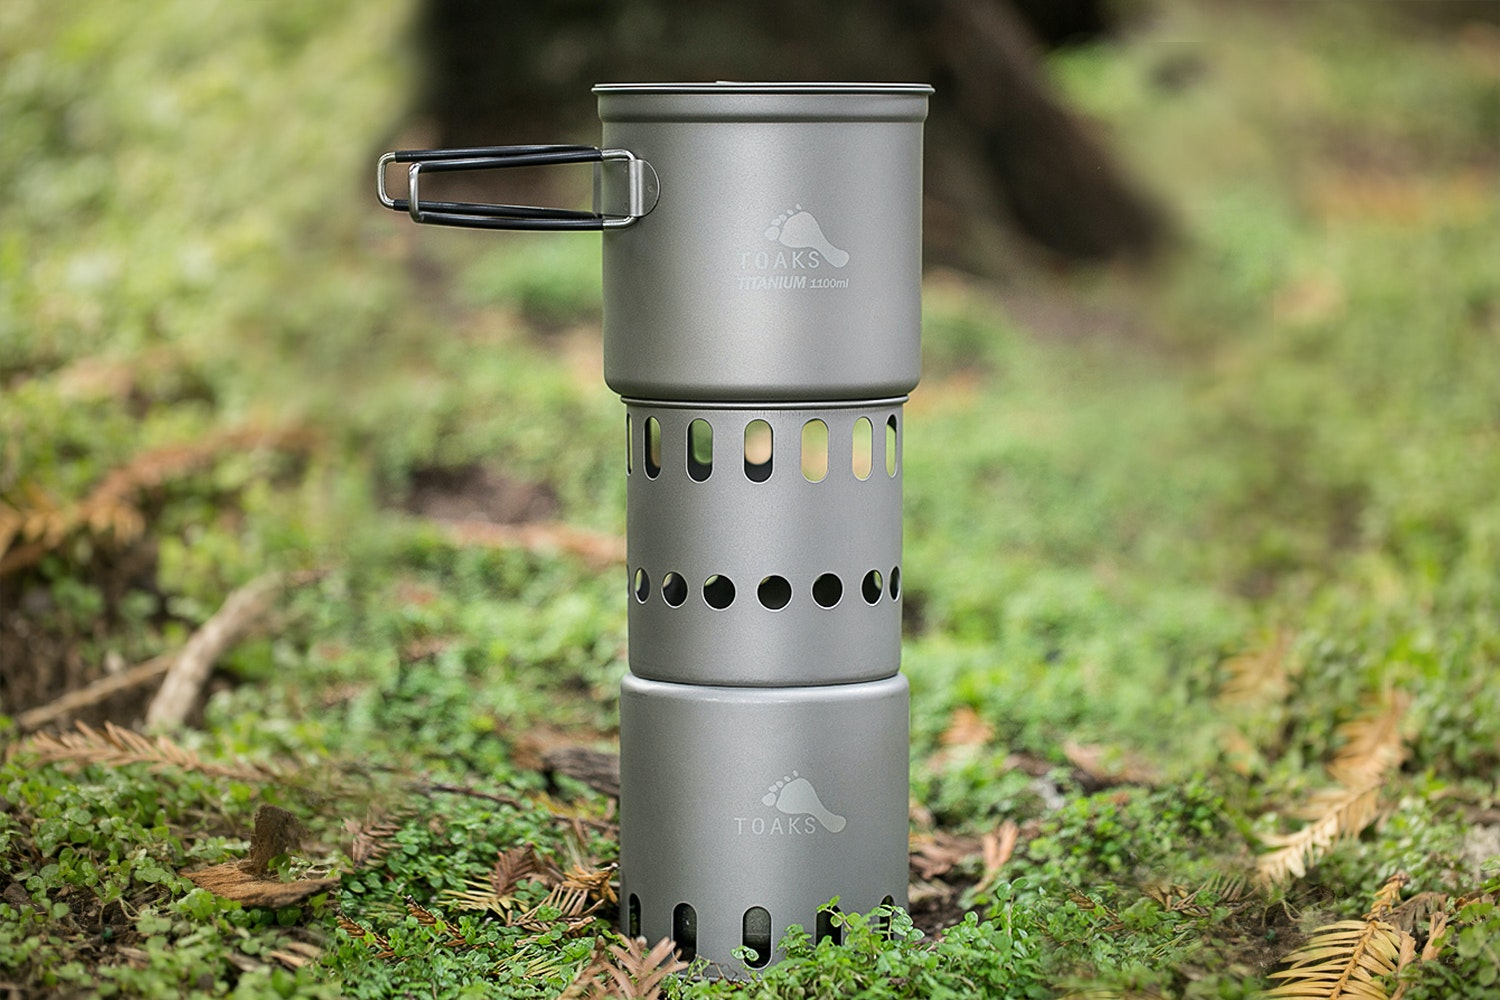 Toaks Wood Burning Stove with Optional Pot